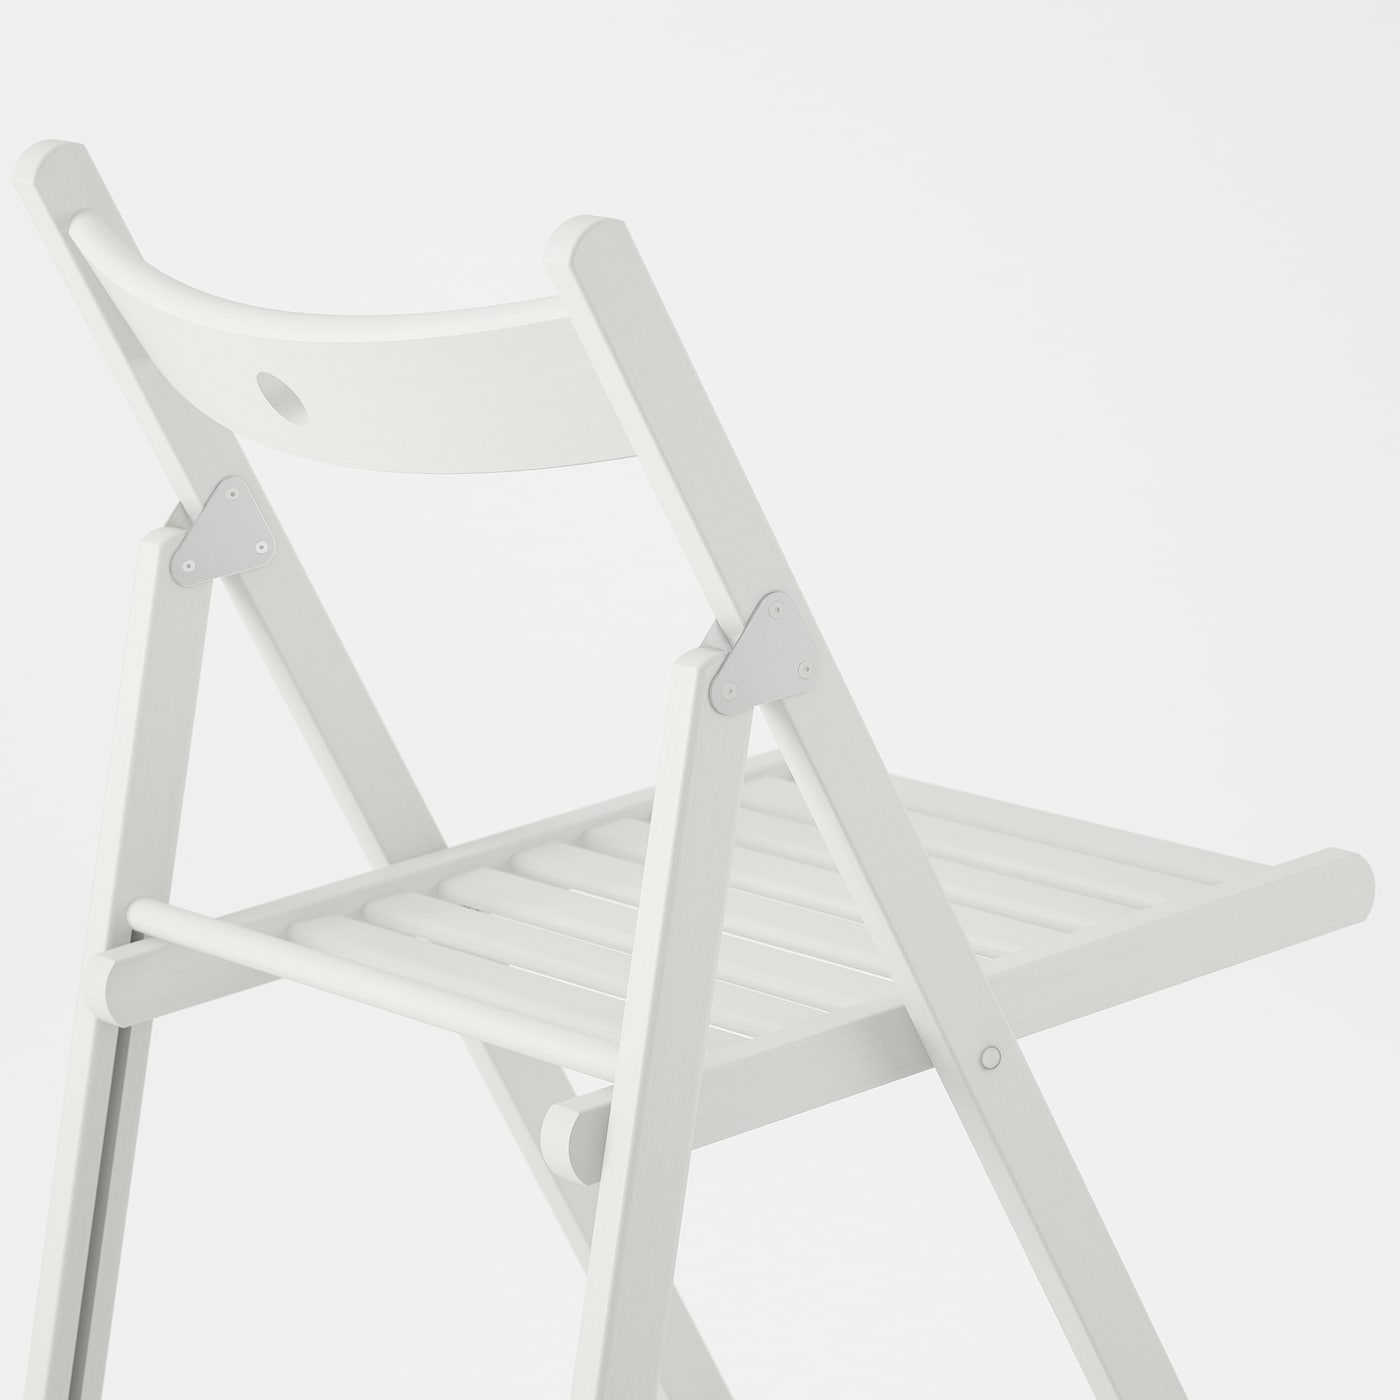 White Wood Folding Chairs Online Shopping For Women Men Kids Fashion Lifestyle Free Delivery Returns